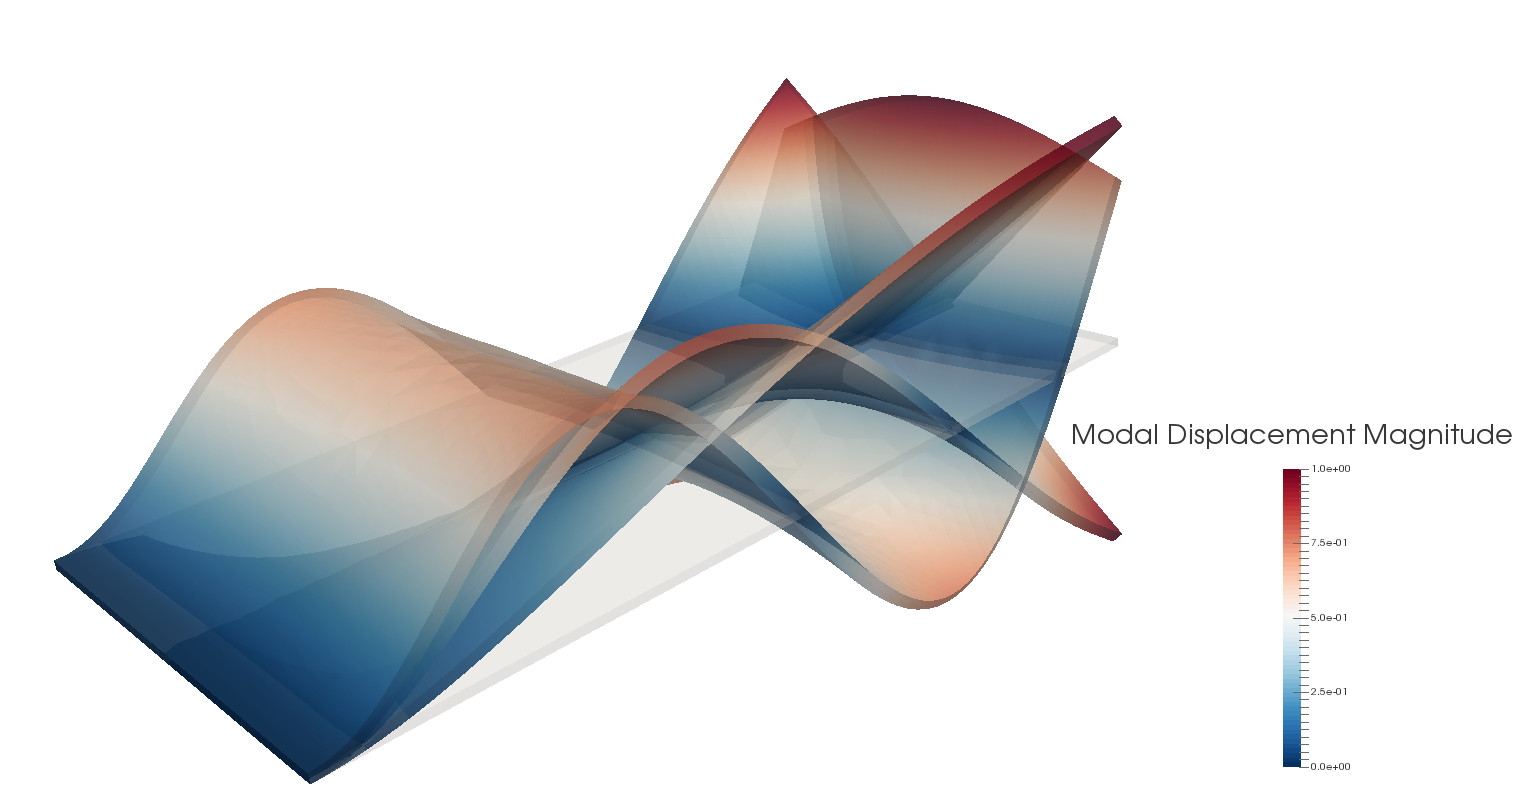 Modal FEA analysis: Modal displacements